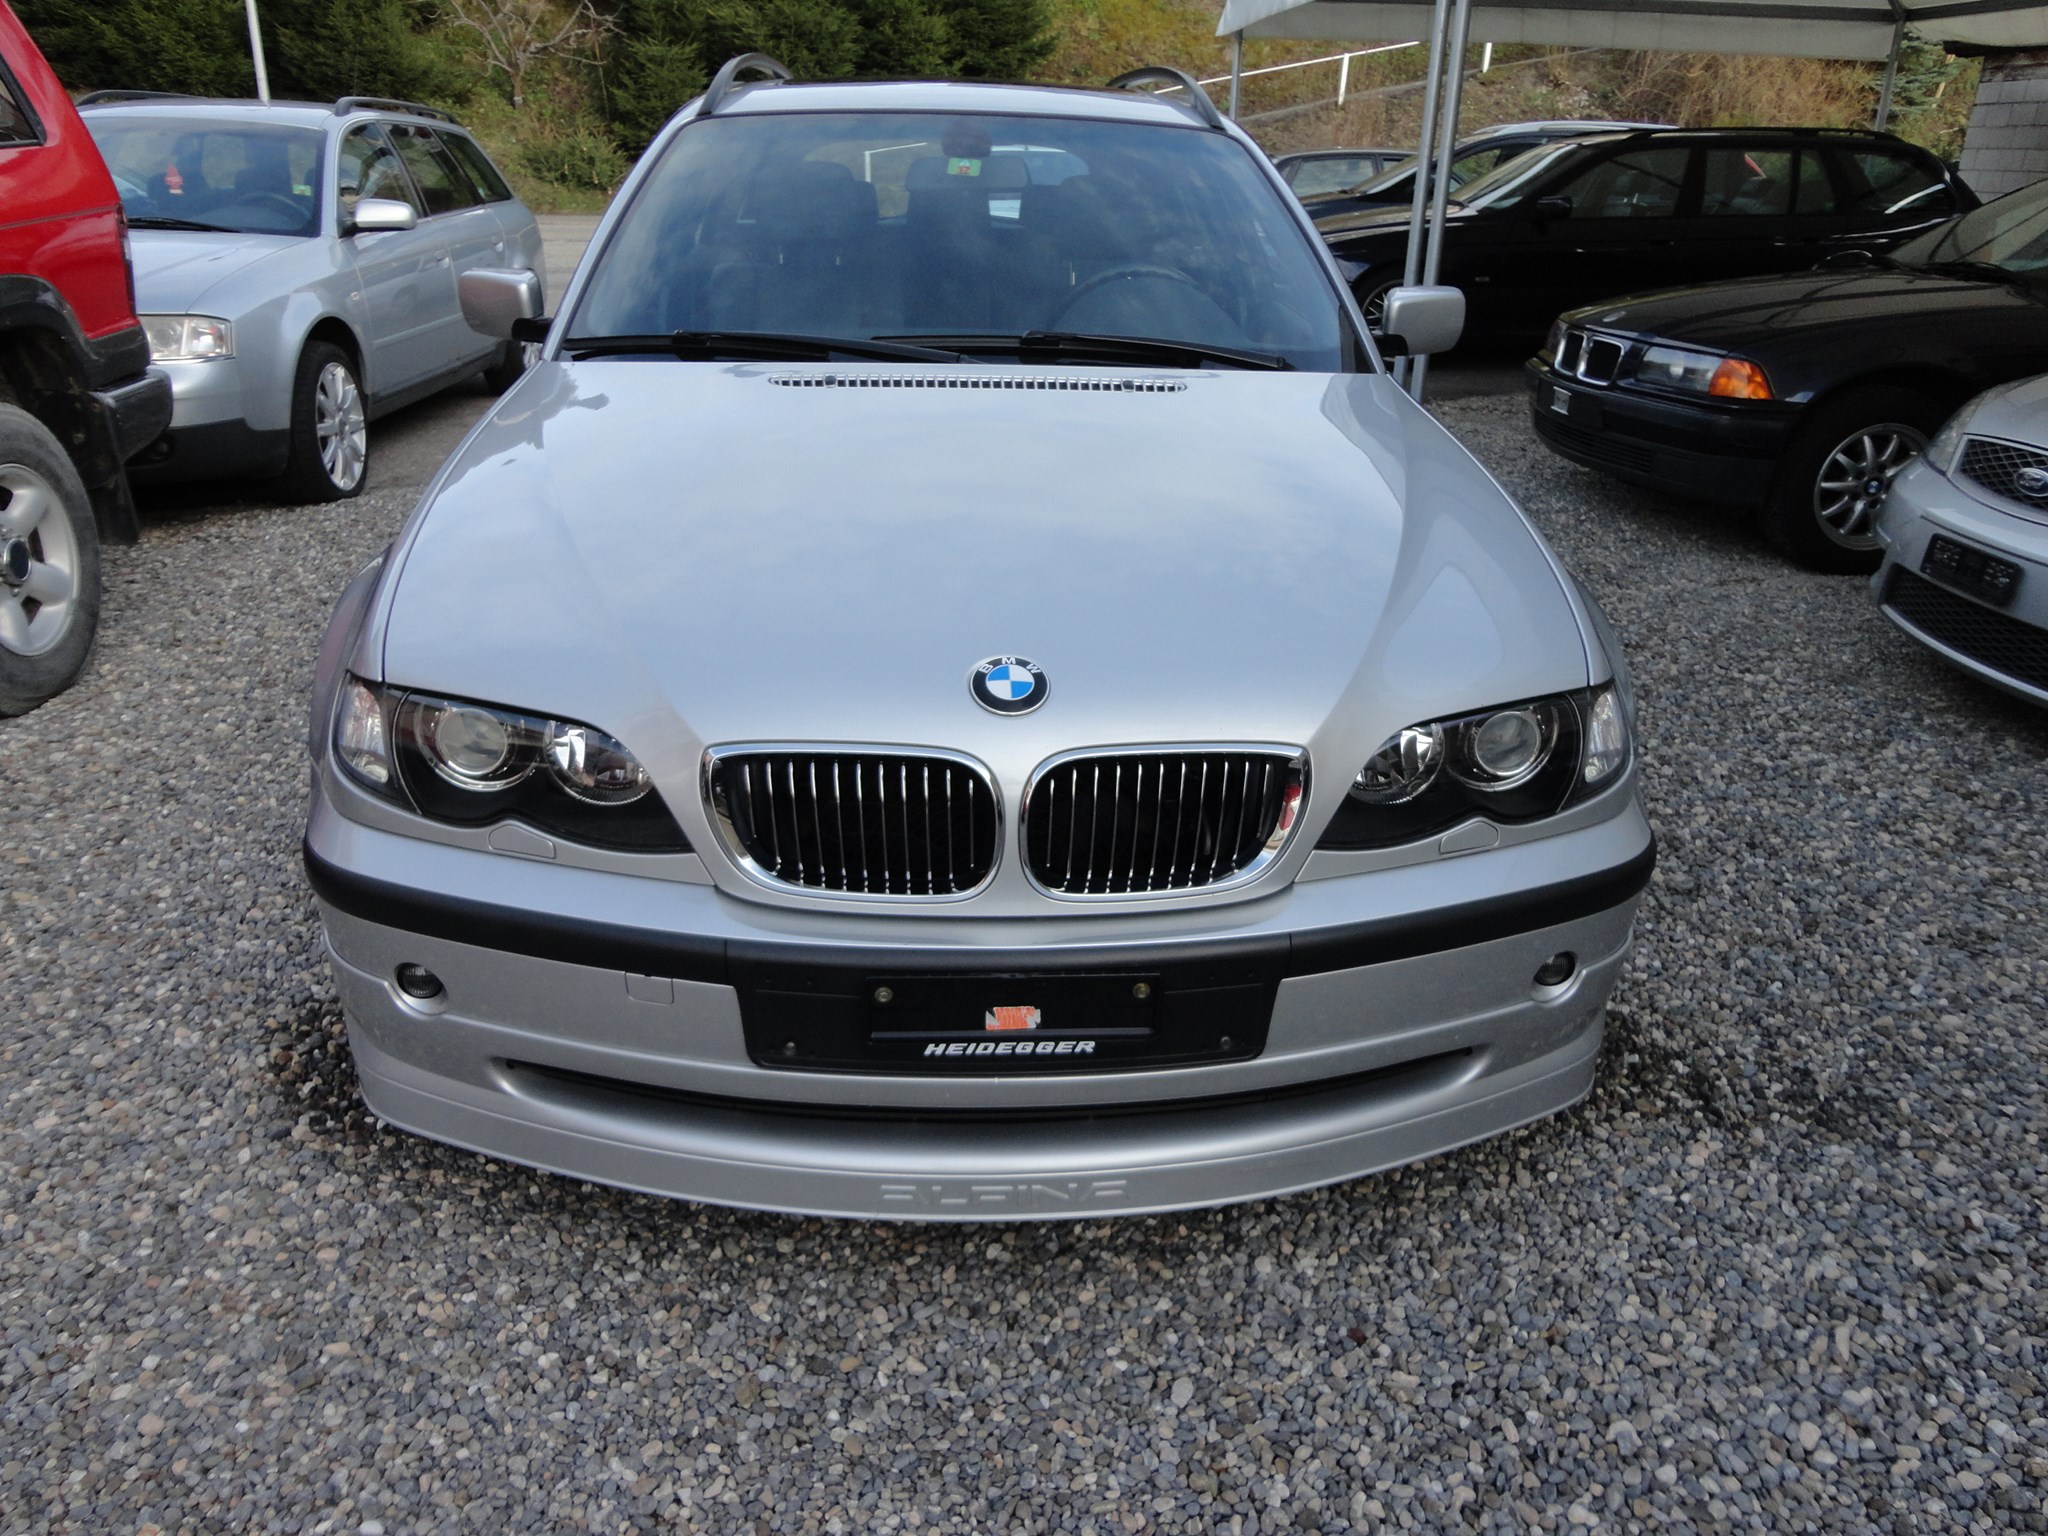 estate BMW Alpina B3/D3 3 SERIES B3 3.3 X Touring S.Tronic